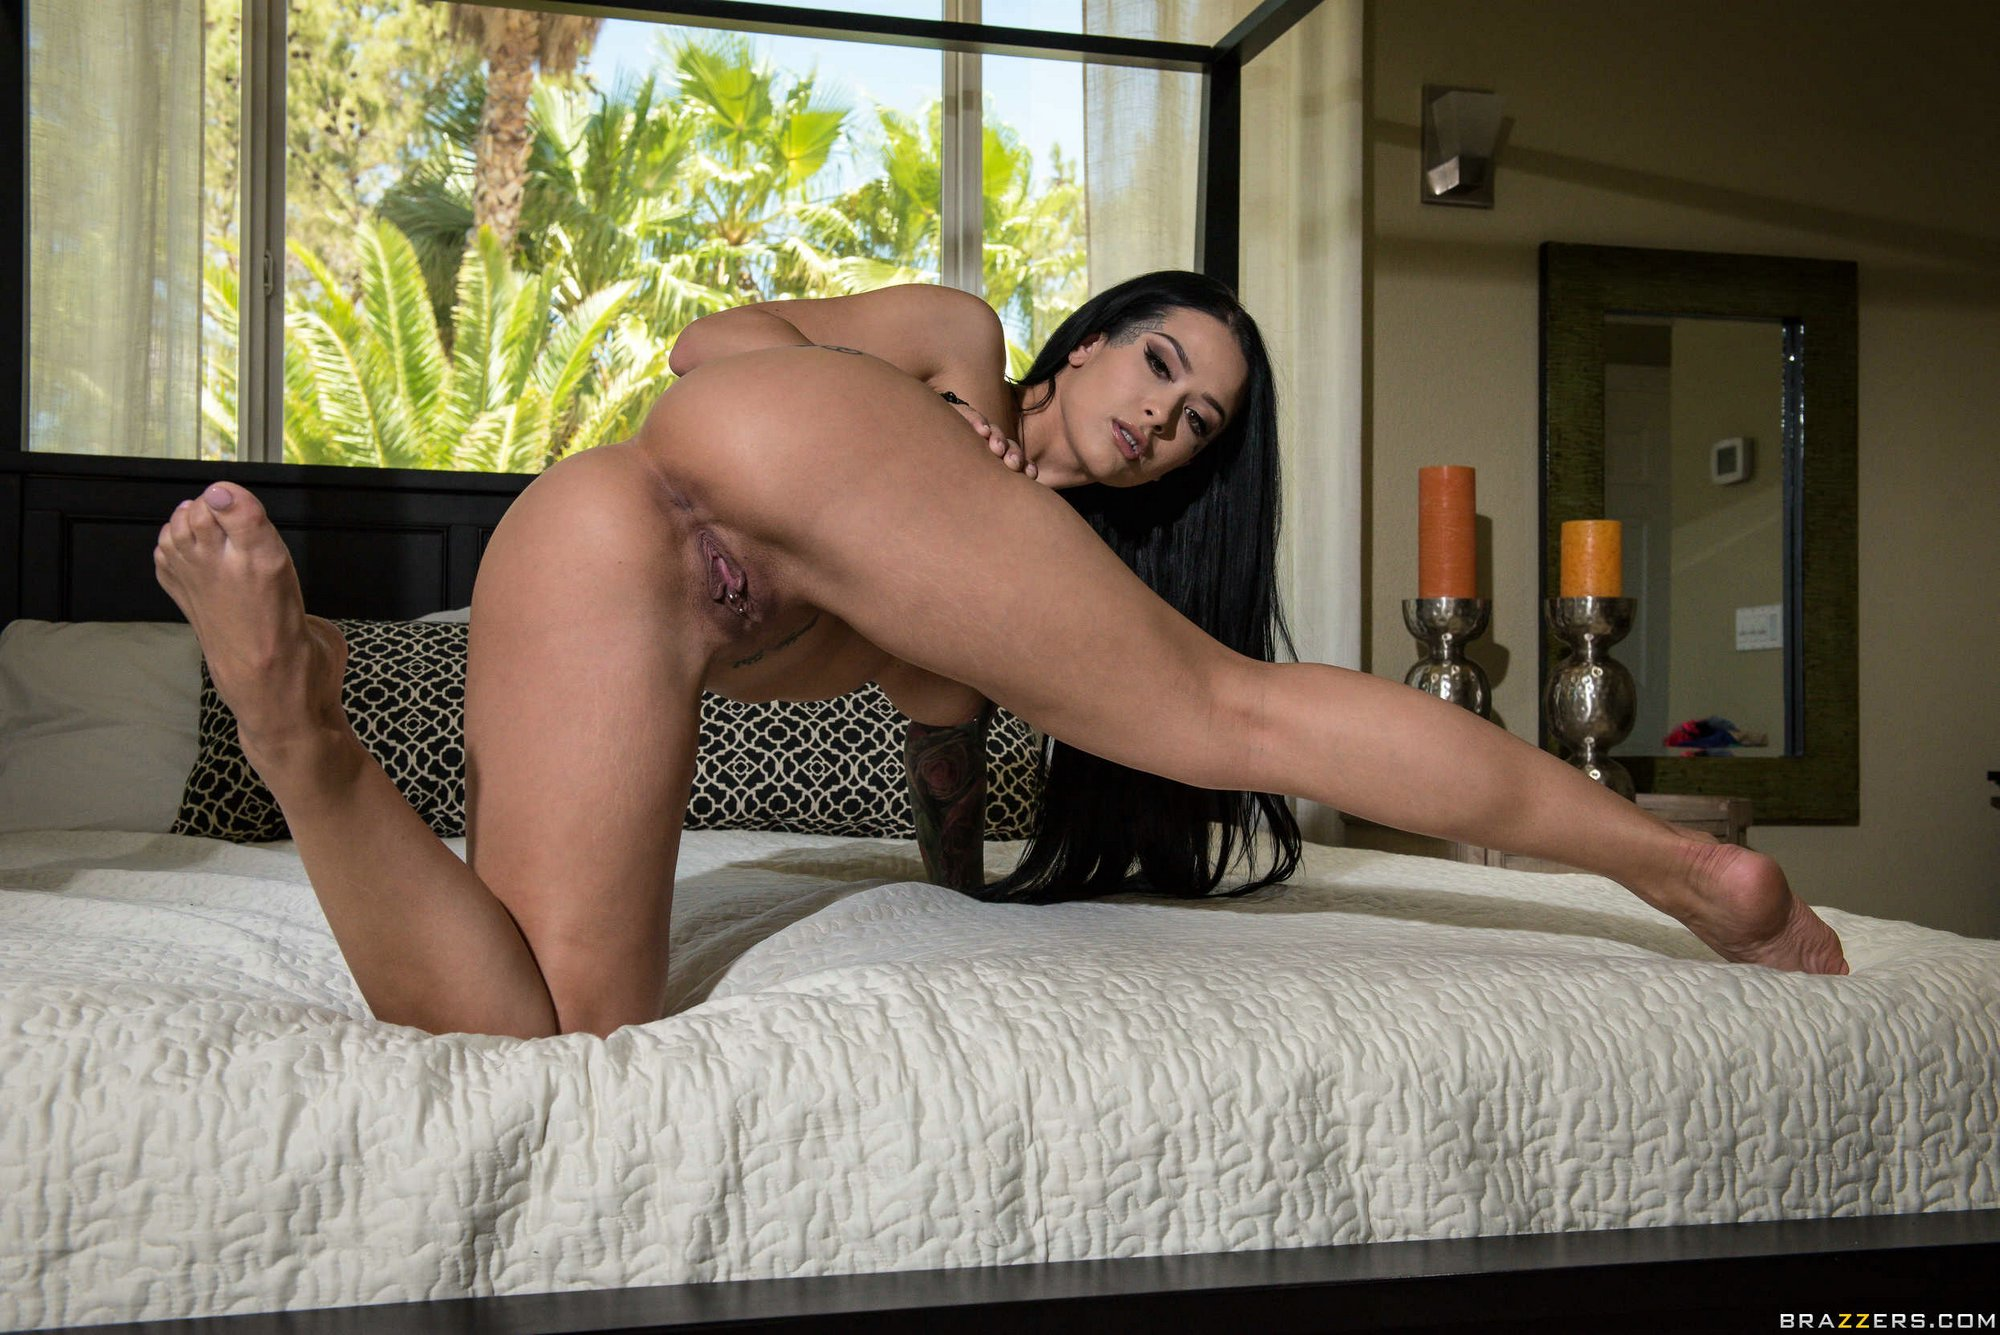 Katrina Jade Loves Teasing With Hot Nude Body On Bed - My -4181